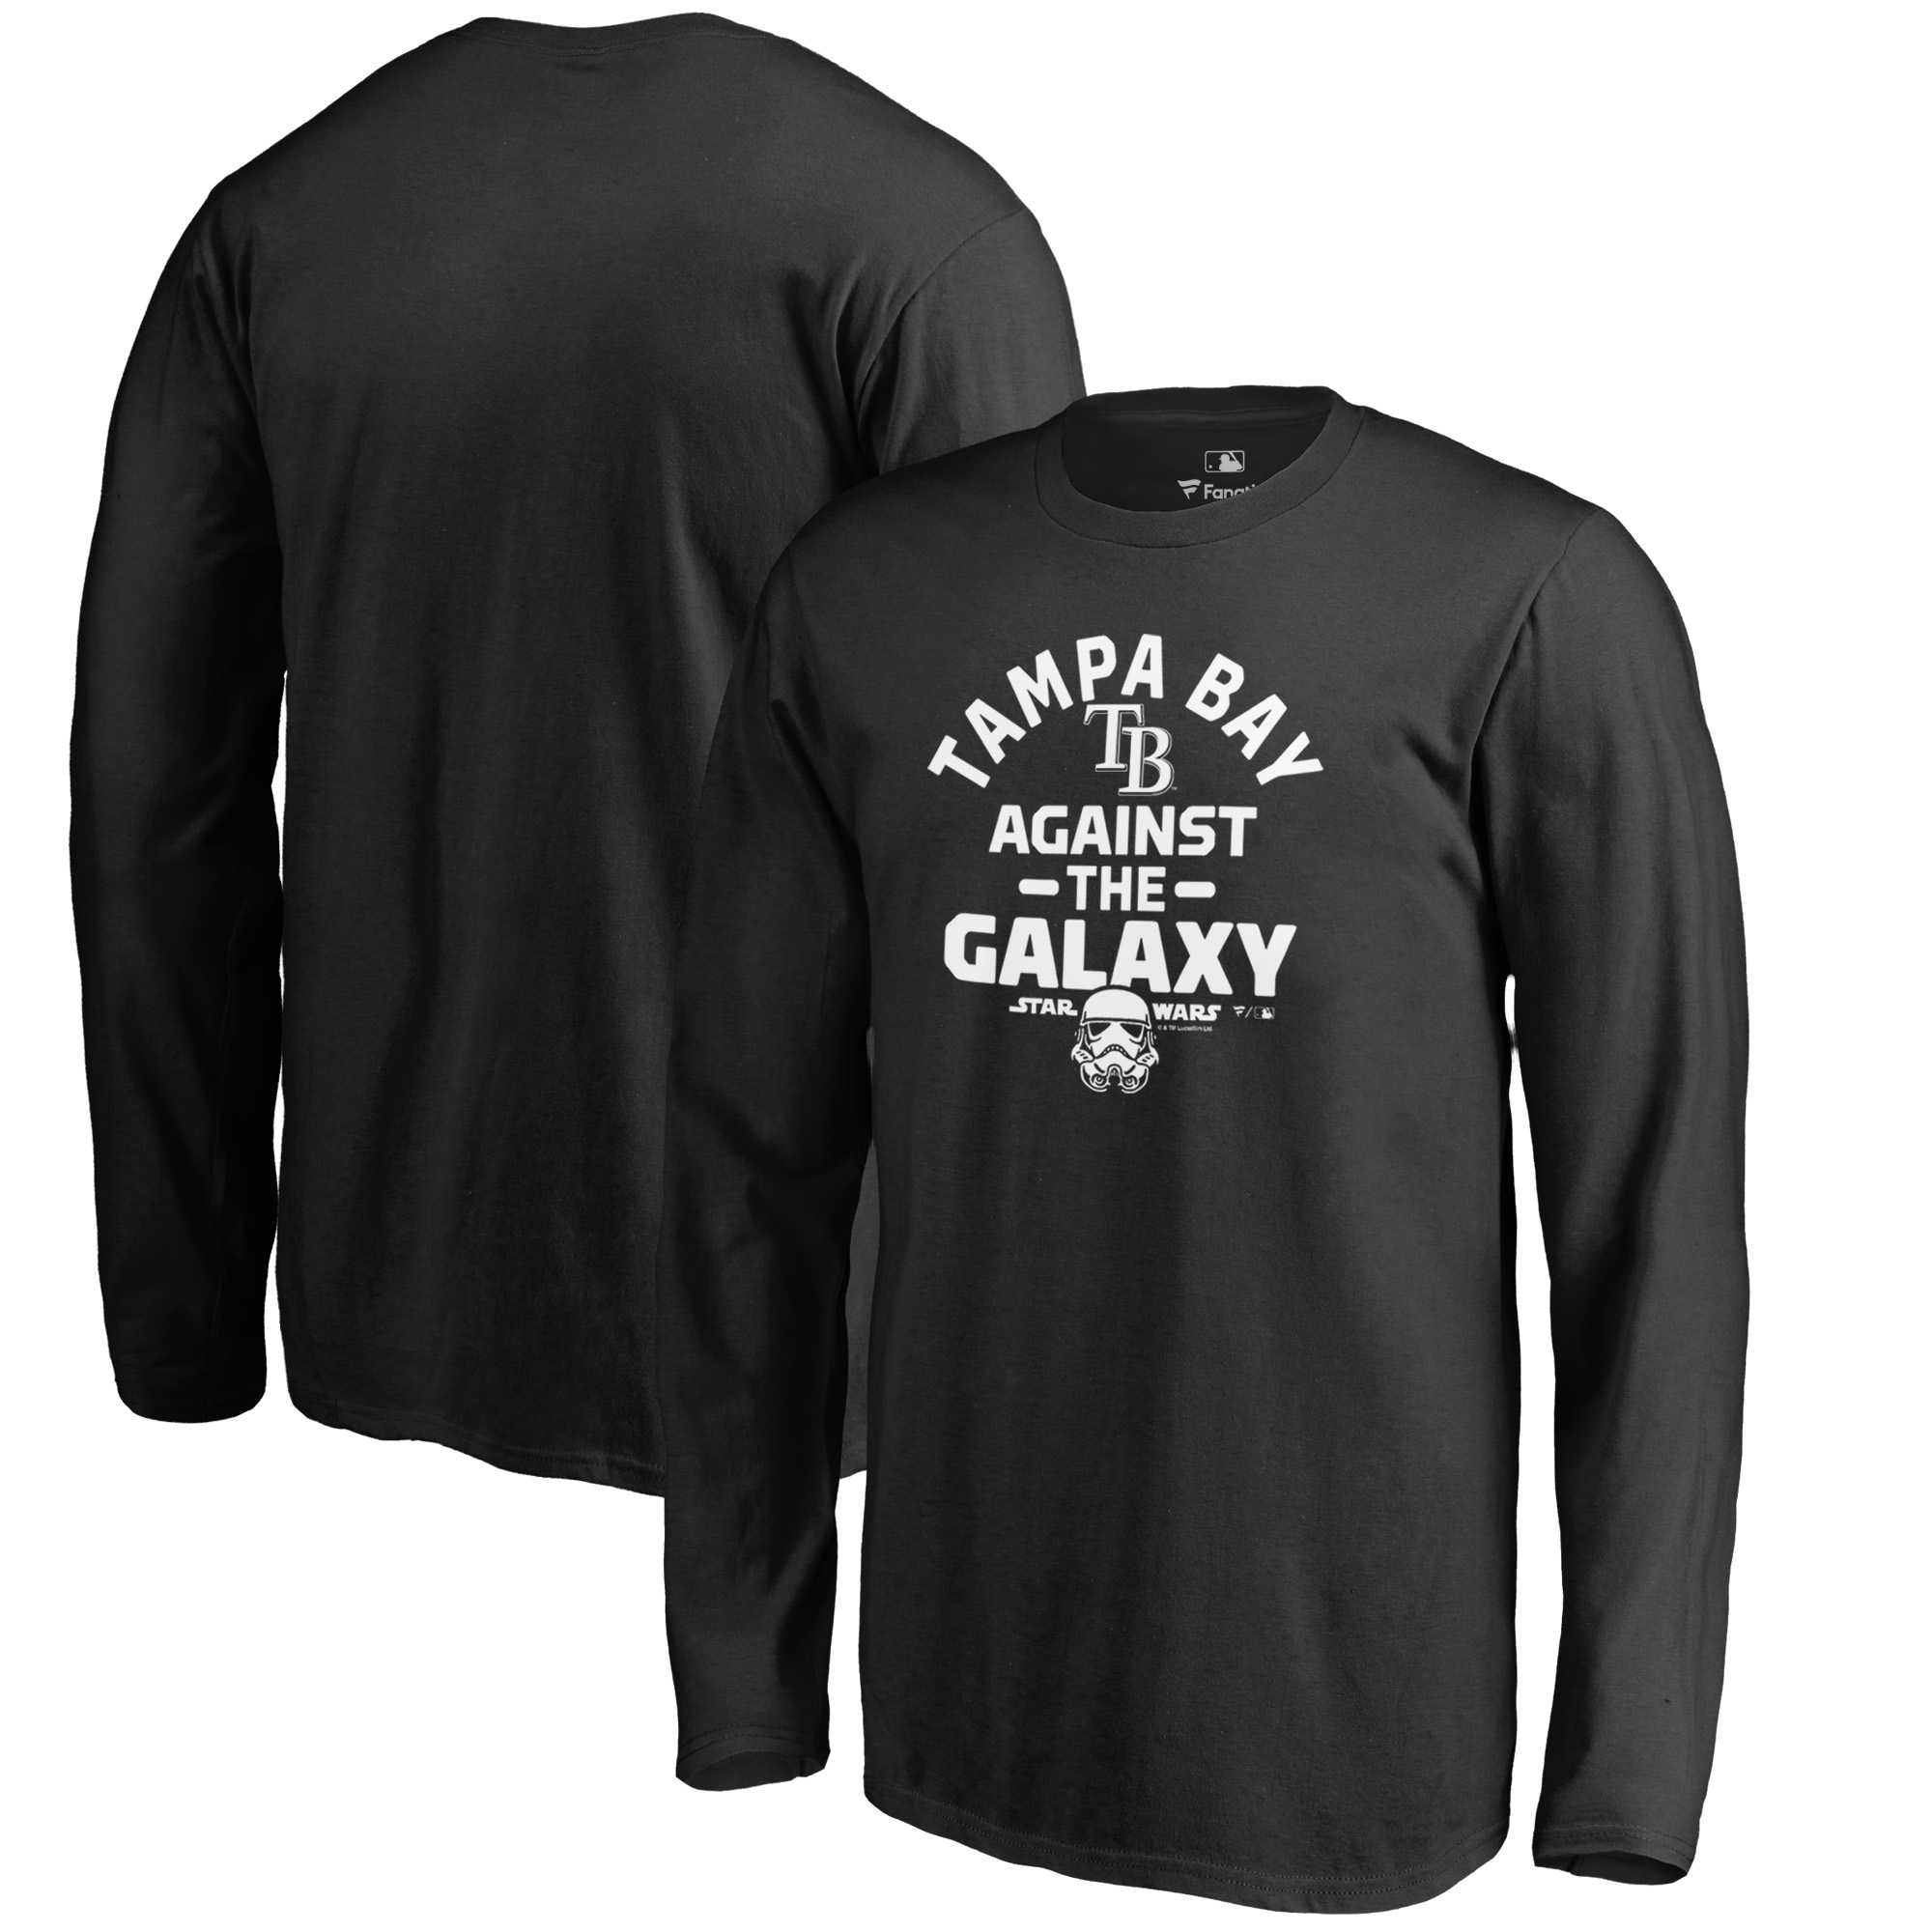 Tampa Bay Rays Fanatics Branded Youth MLB Star Wars Against The Galaxy Long Sleeve T-Shirt - Black